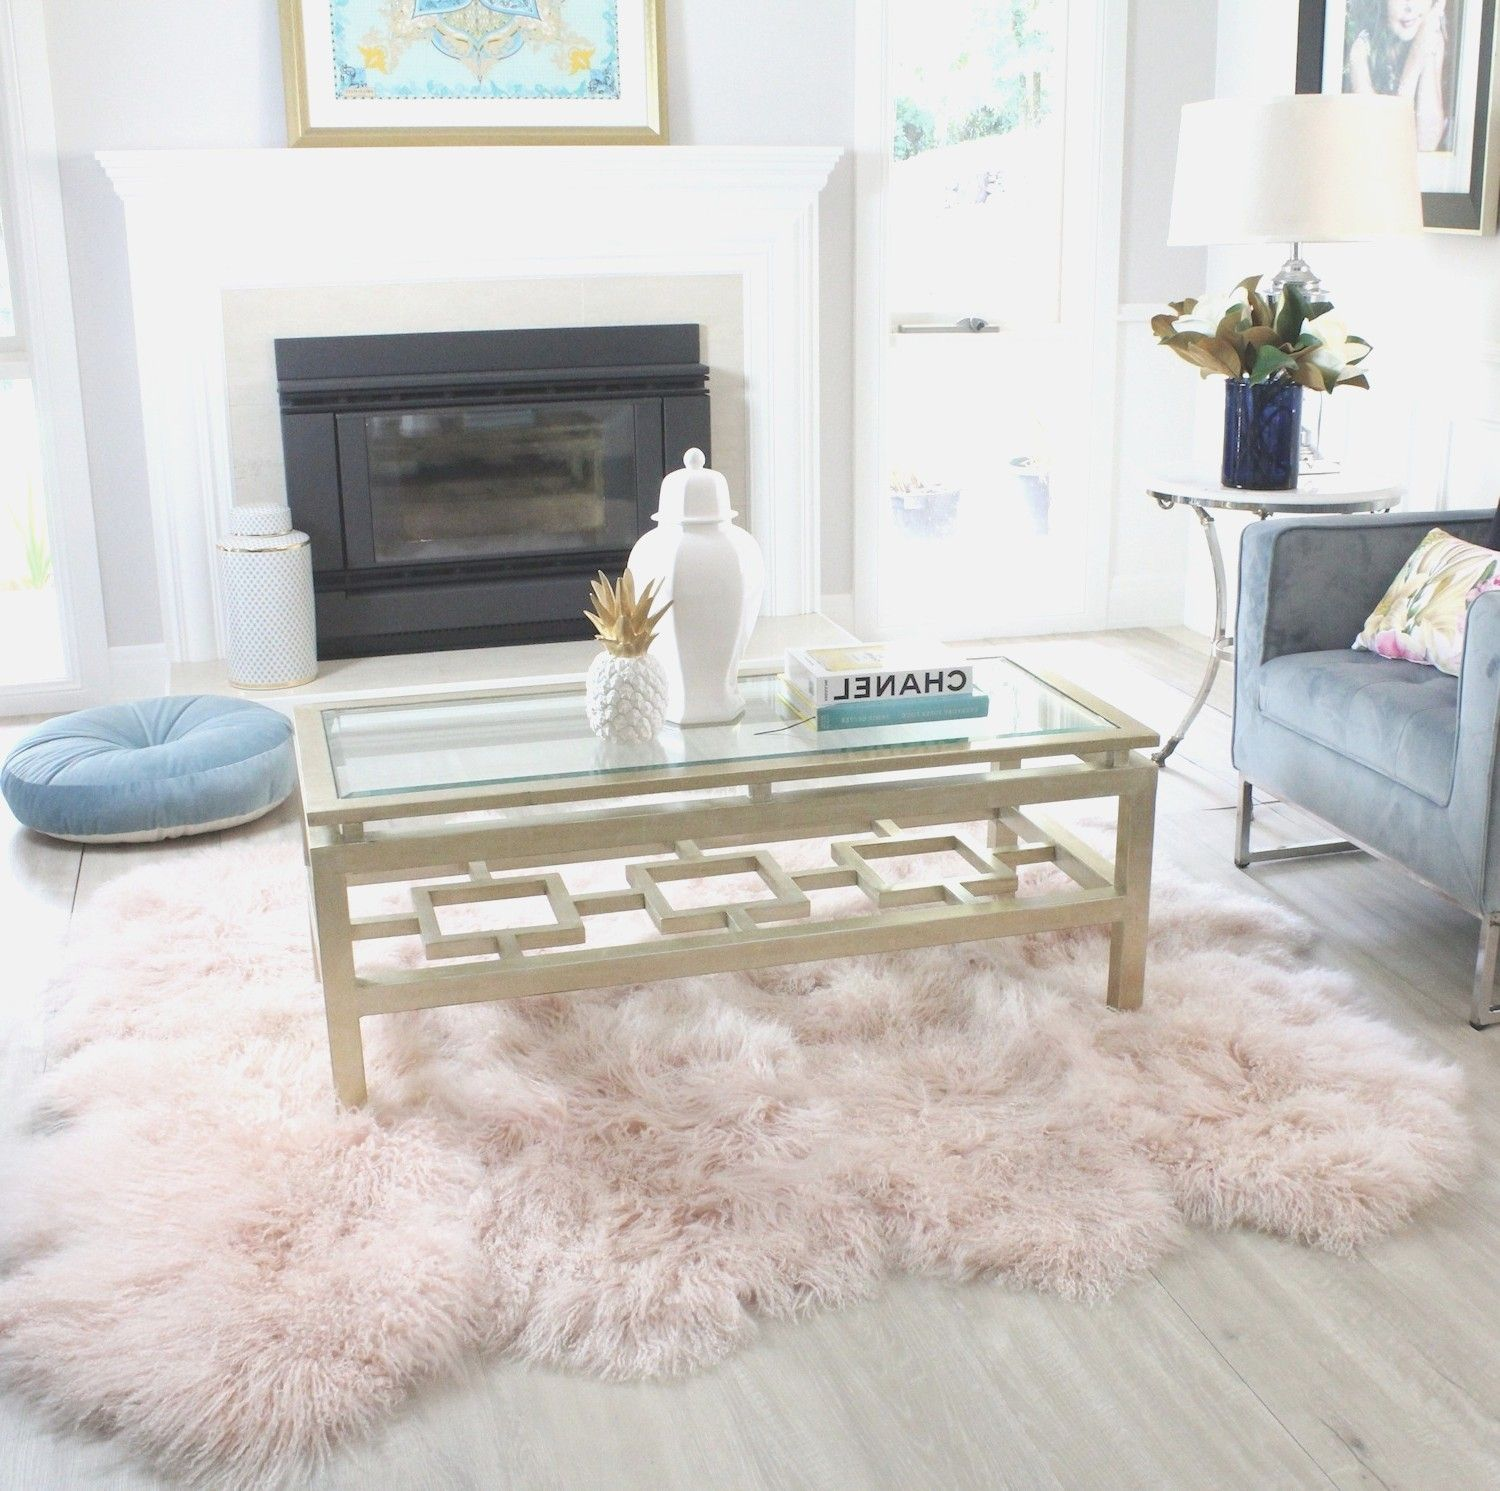 Large area Rugs for Living Room - extra large area rugs for living on extra large clothes, sheepskin rugs, shaggy rugs, milliken rug, extra large bathroom, extra large decorative accessories, square rugs, wool rugs, circular rugs, designer rugs, extra large tiles, small rugs, plain rugs, extra large food, extra large plants, oriental rugs, extra large games, living room rugs, modern rugs, extra large toys, extra large lighting, extra large art, shaped rugs, runner rugs, extra large bedroom, extra large garden, cheap rugs, extra large dining room, extra large sweaters, extra large pets, extra large decor, extra large appliances, extra large crystal, round rugs, extra large outdoor, extra large cabinets, traditional rugs, childrens rugs, hand-knotted rugs,